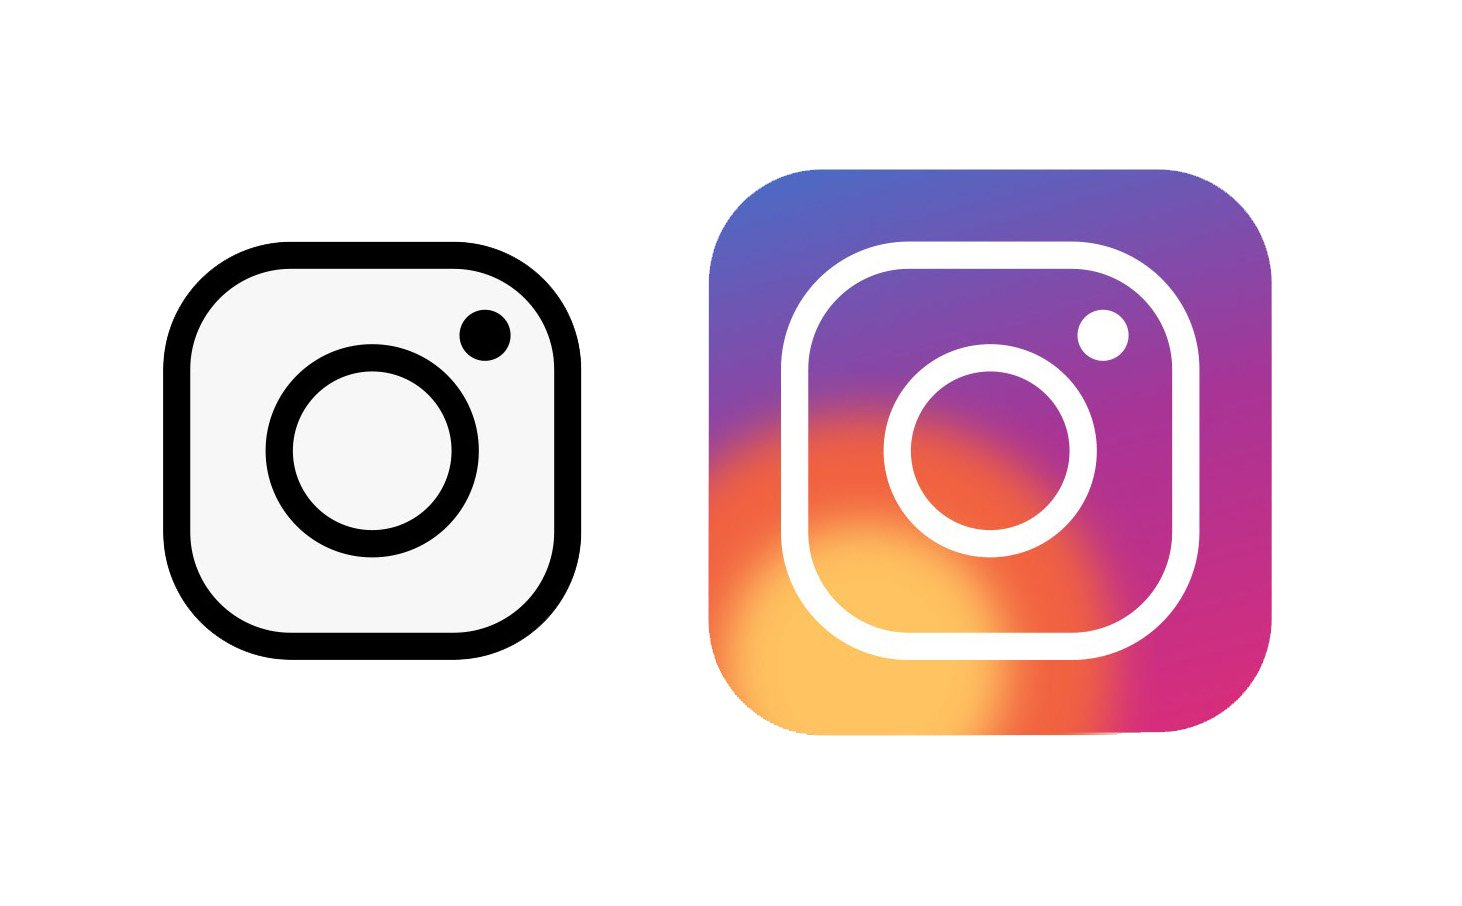 Instagram Logo, Instagram Symbol Meaning, History and Evolution